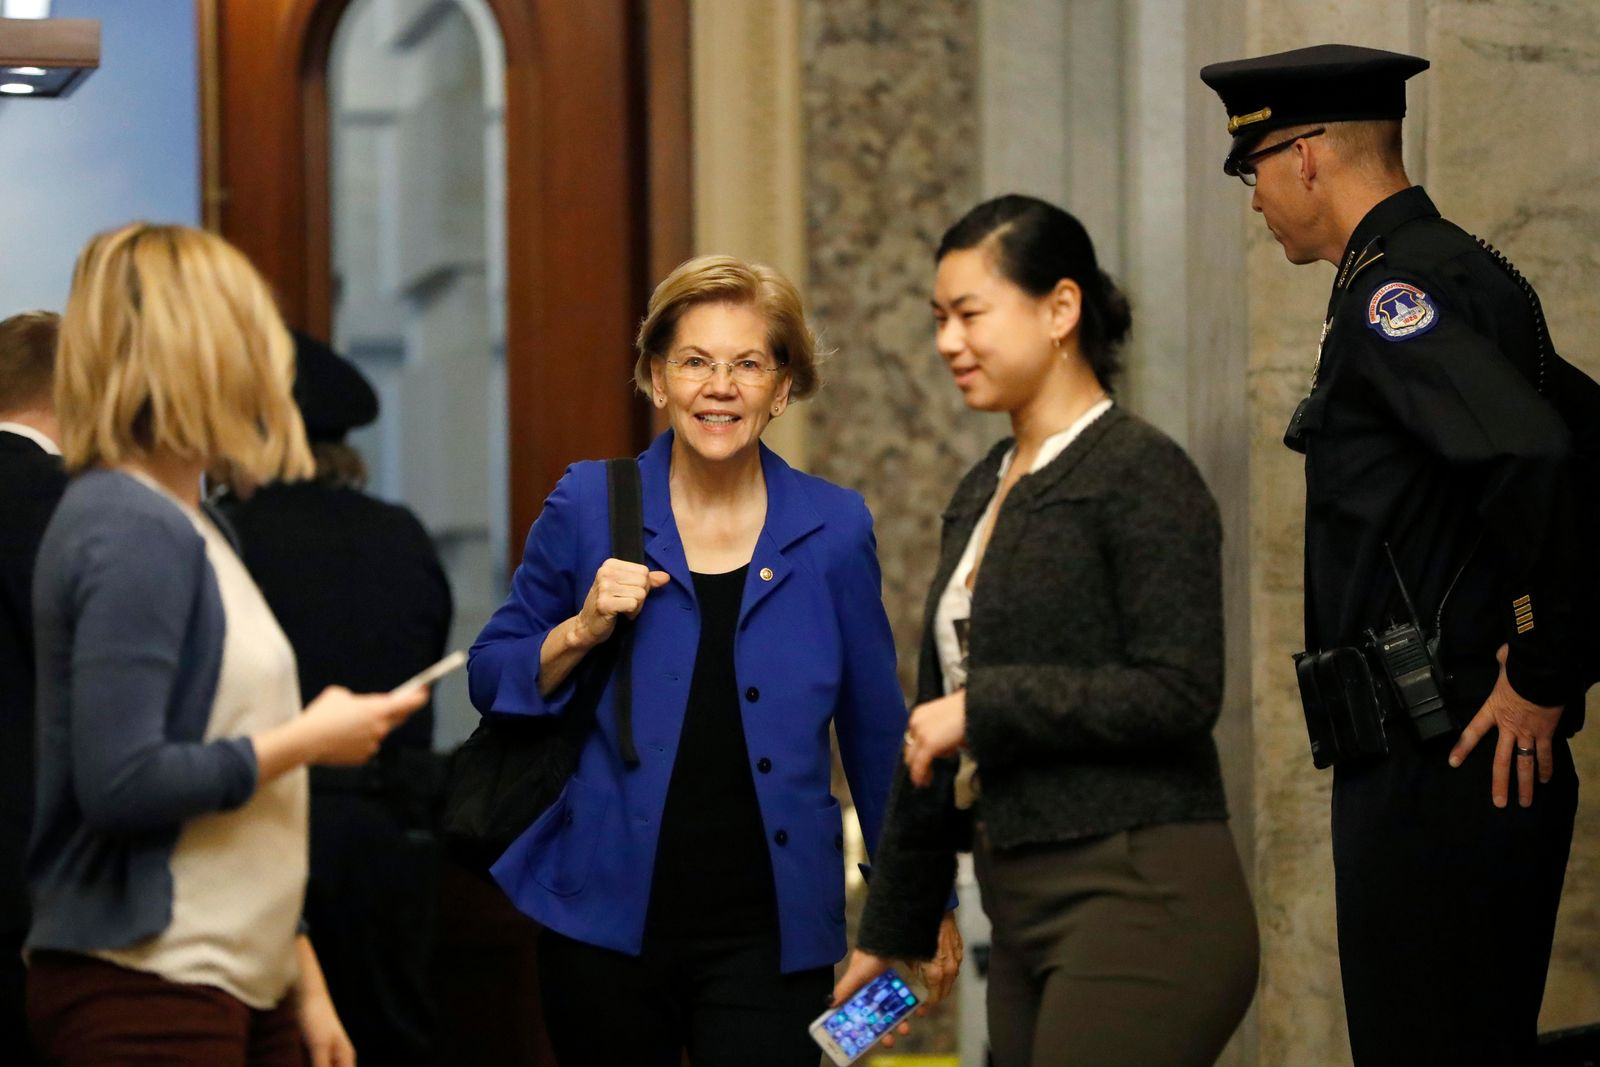 Sen. Elizabeth Warren, D-Mass., center, arrives at the Capitol in Washington during the impeachment trial of President Donald Trump on charges of abuse of power and obstruction of Congress, Saturday, Jan. 25, 2020. (AP Photo/Julio Cortez)